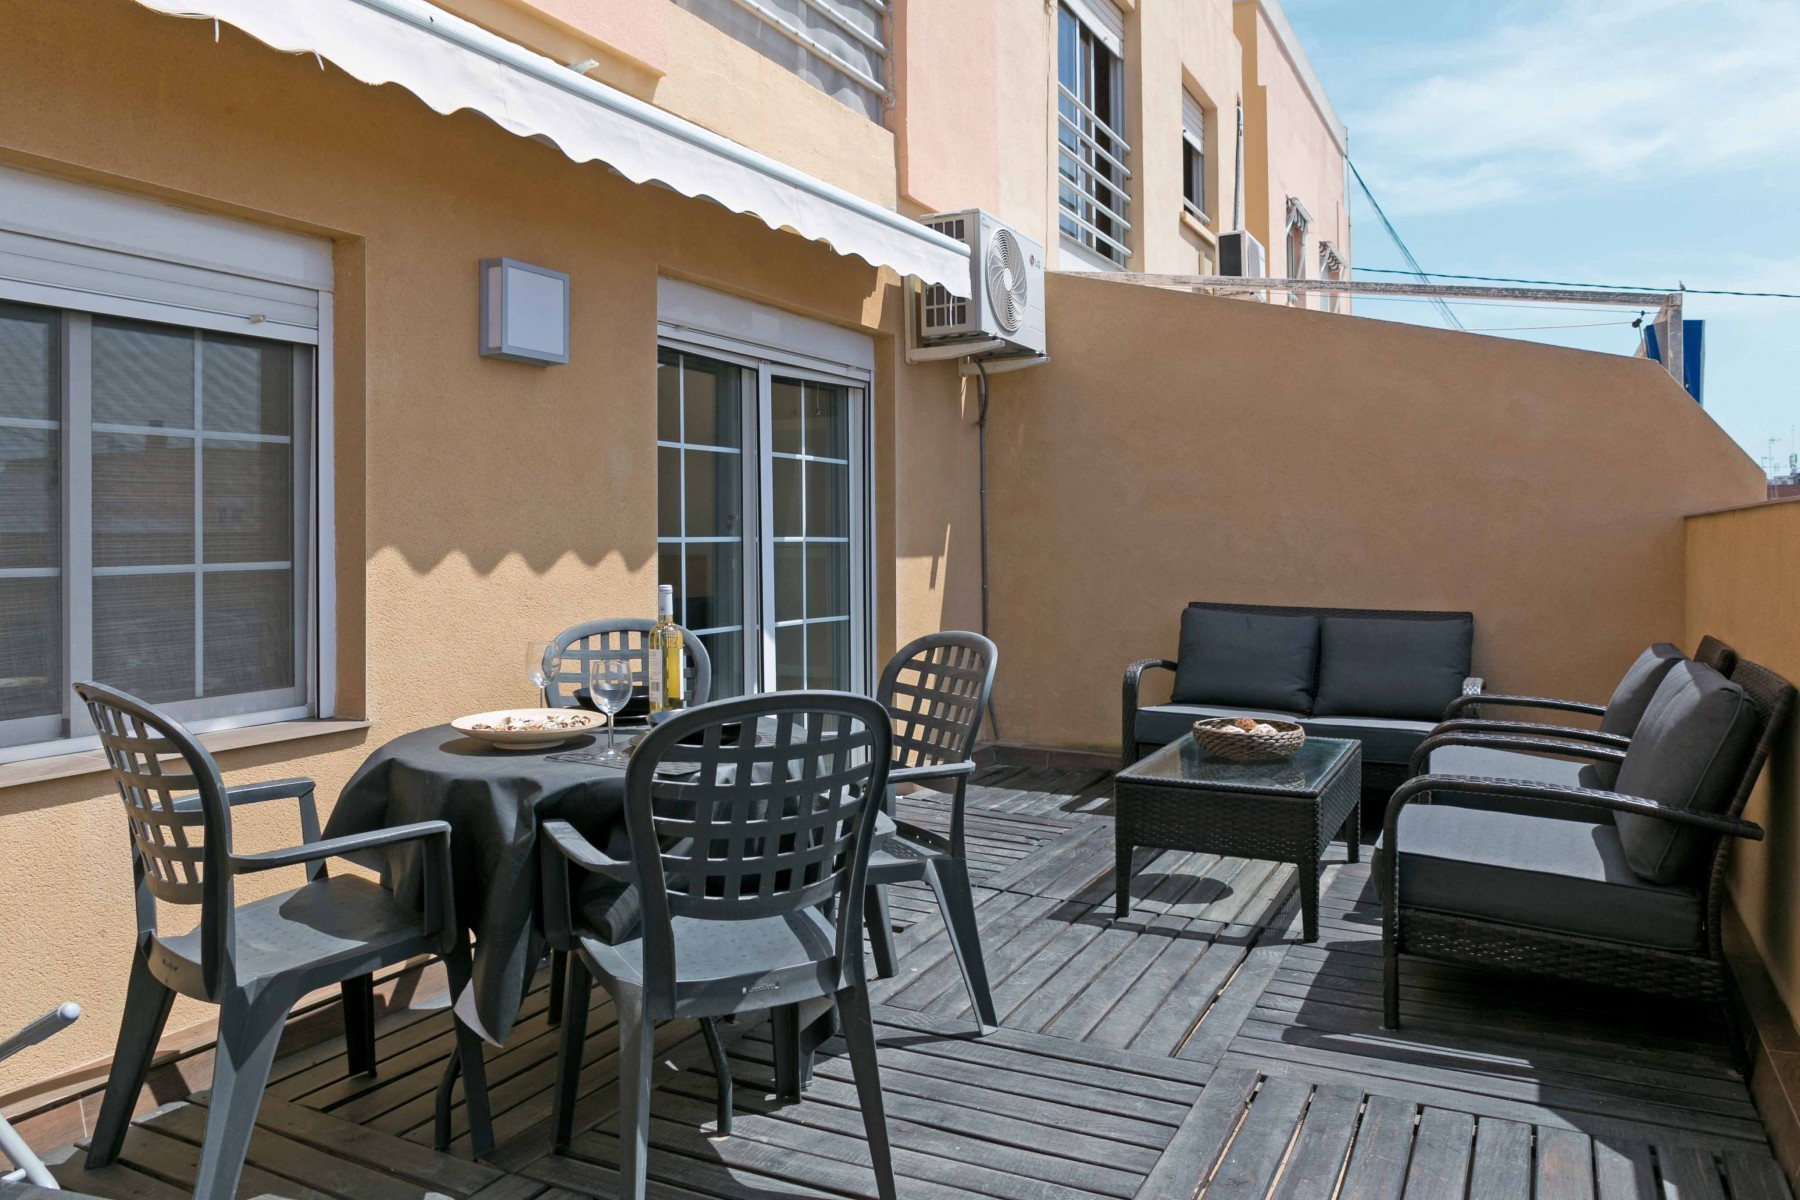 Malvarrosa Attic Beach - Apartments in Valencia